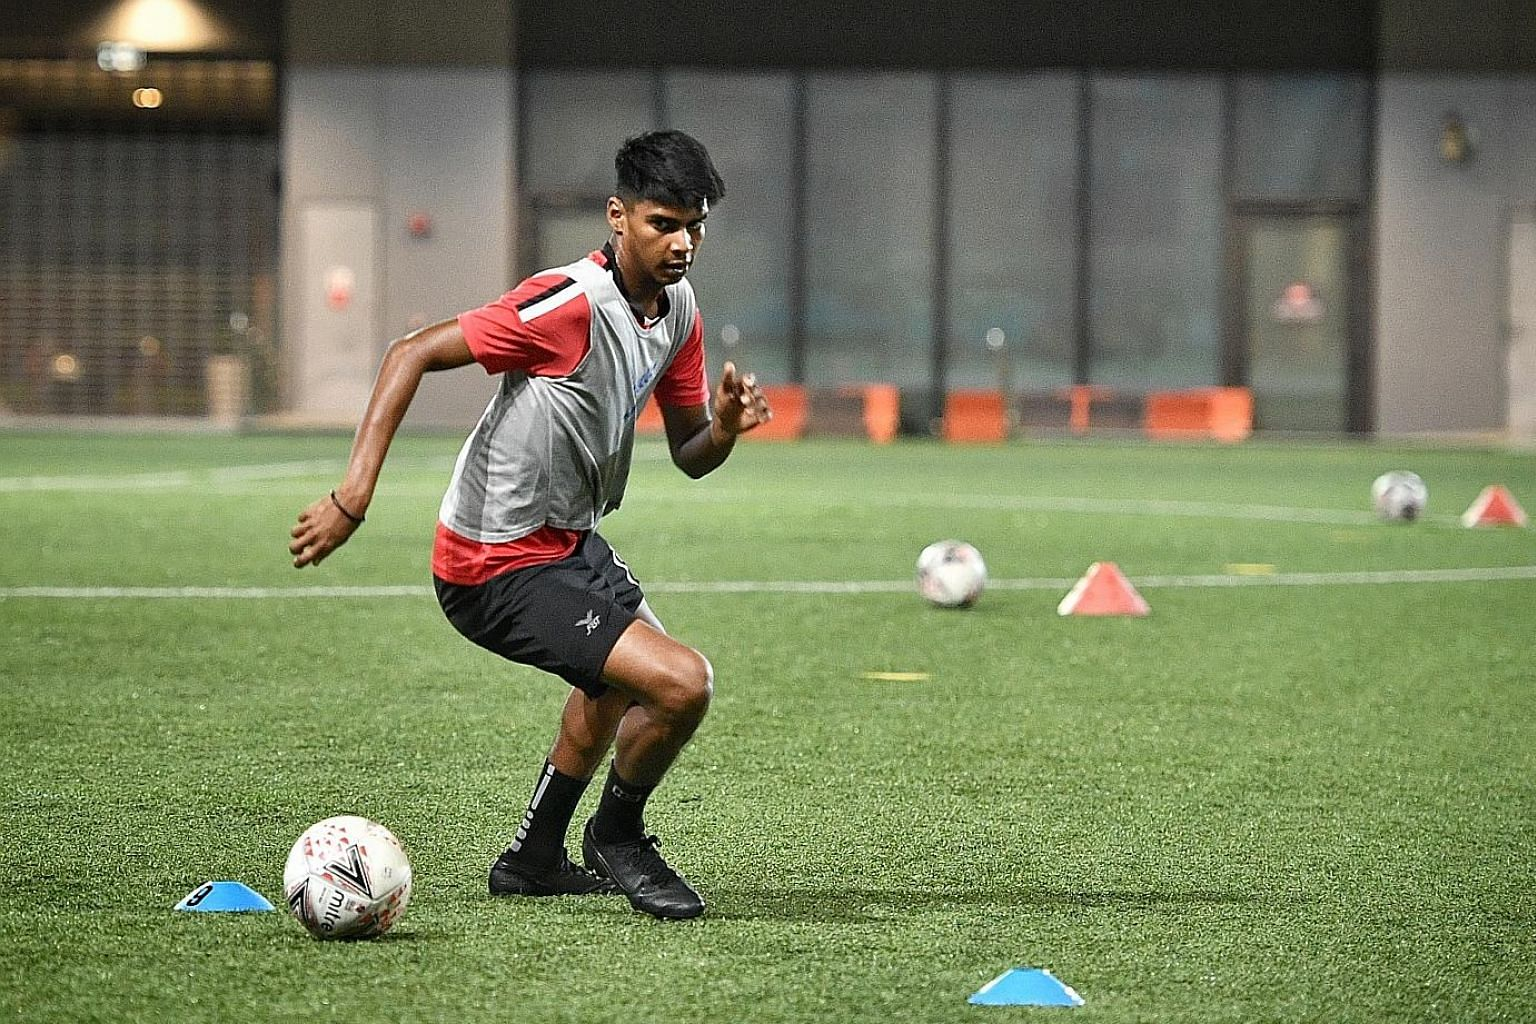 Geylang International's Iqbal Hussain was released by Hougang United, whom he faces today, after last season. He went for trials with Thai League 1 side Sukhothai but the deal collapsed at the last minute. ST PHOTO: ARIFFIN JAMAR